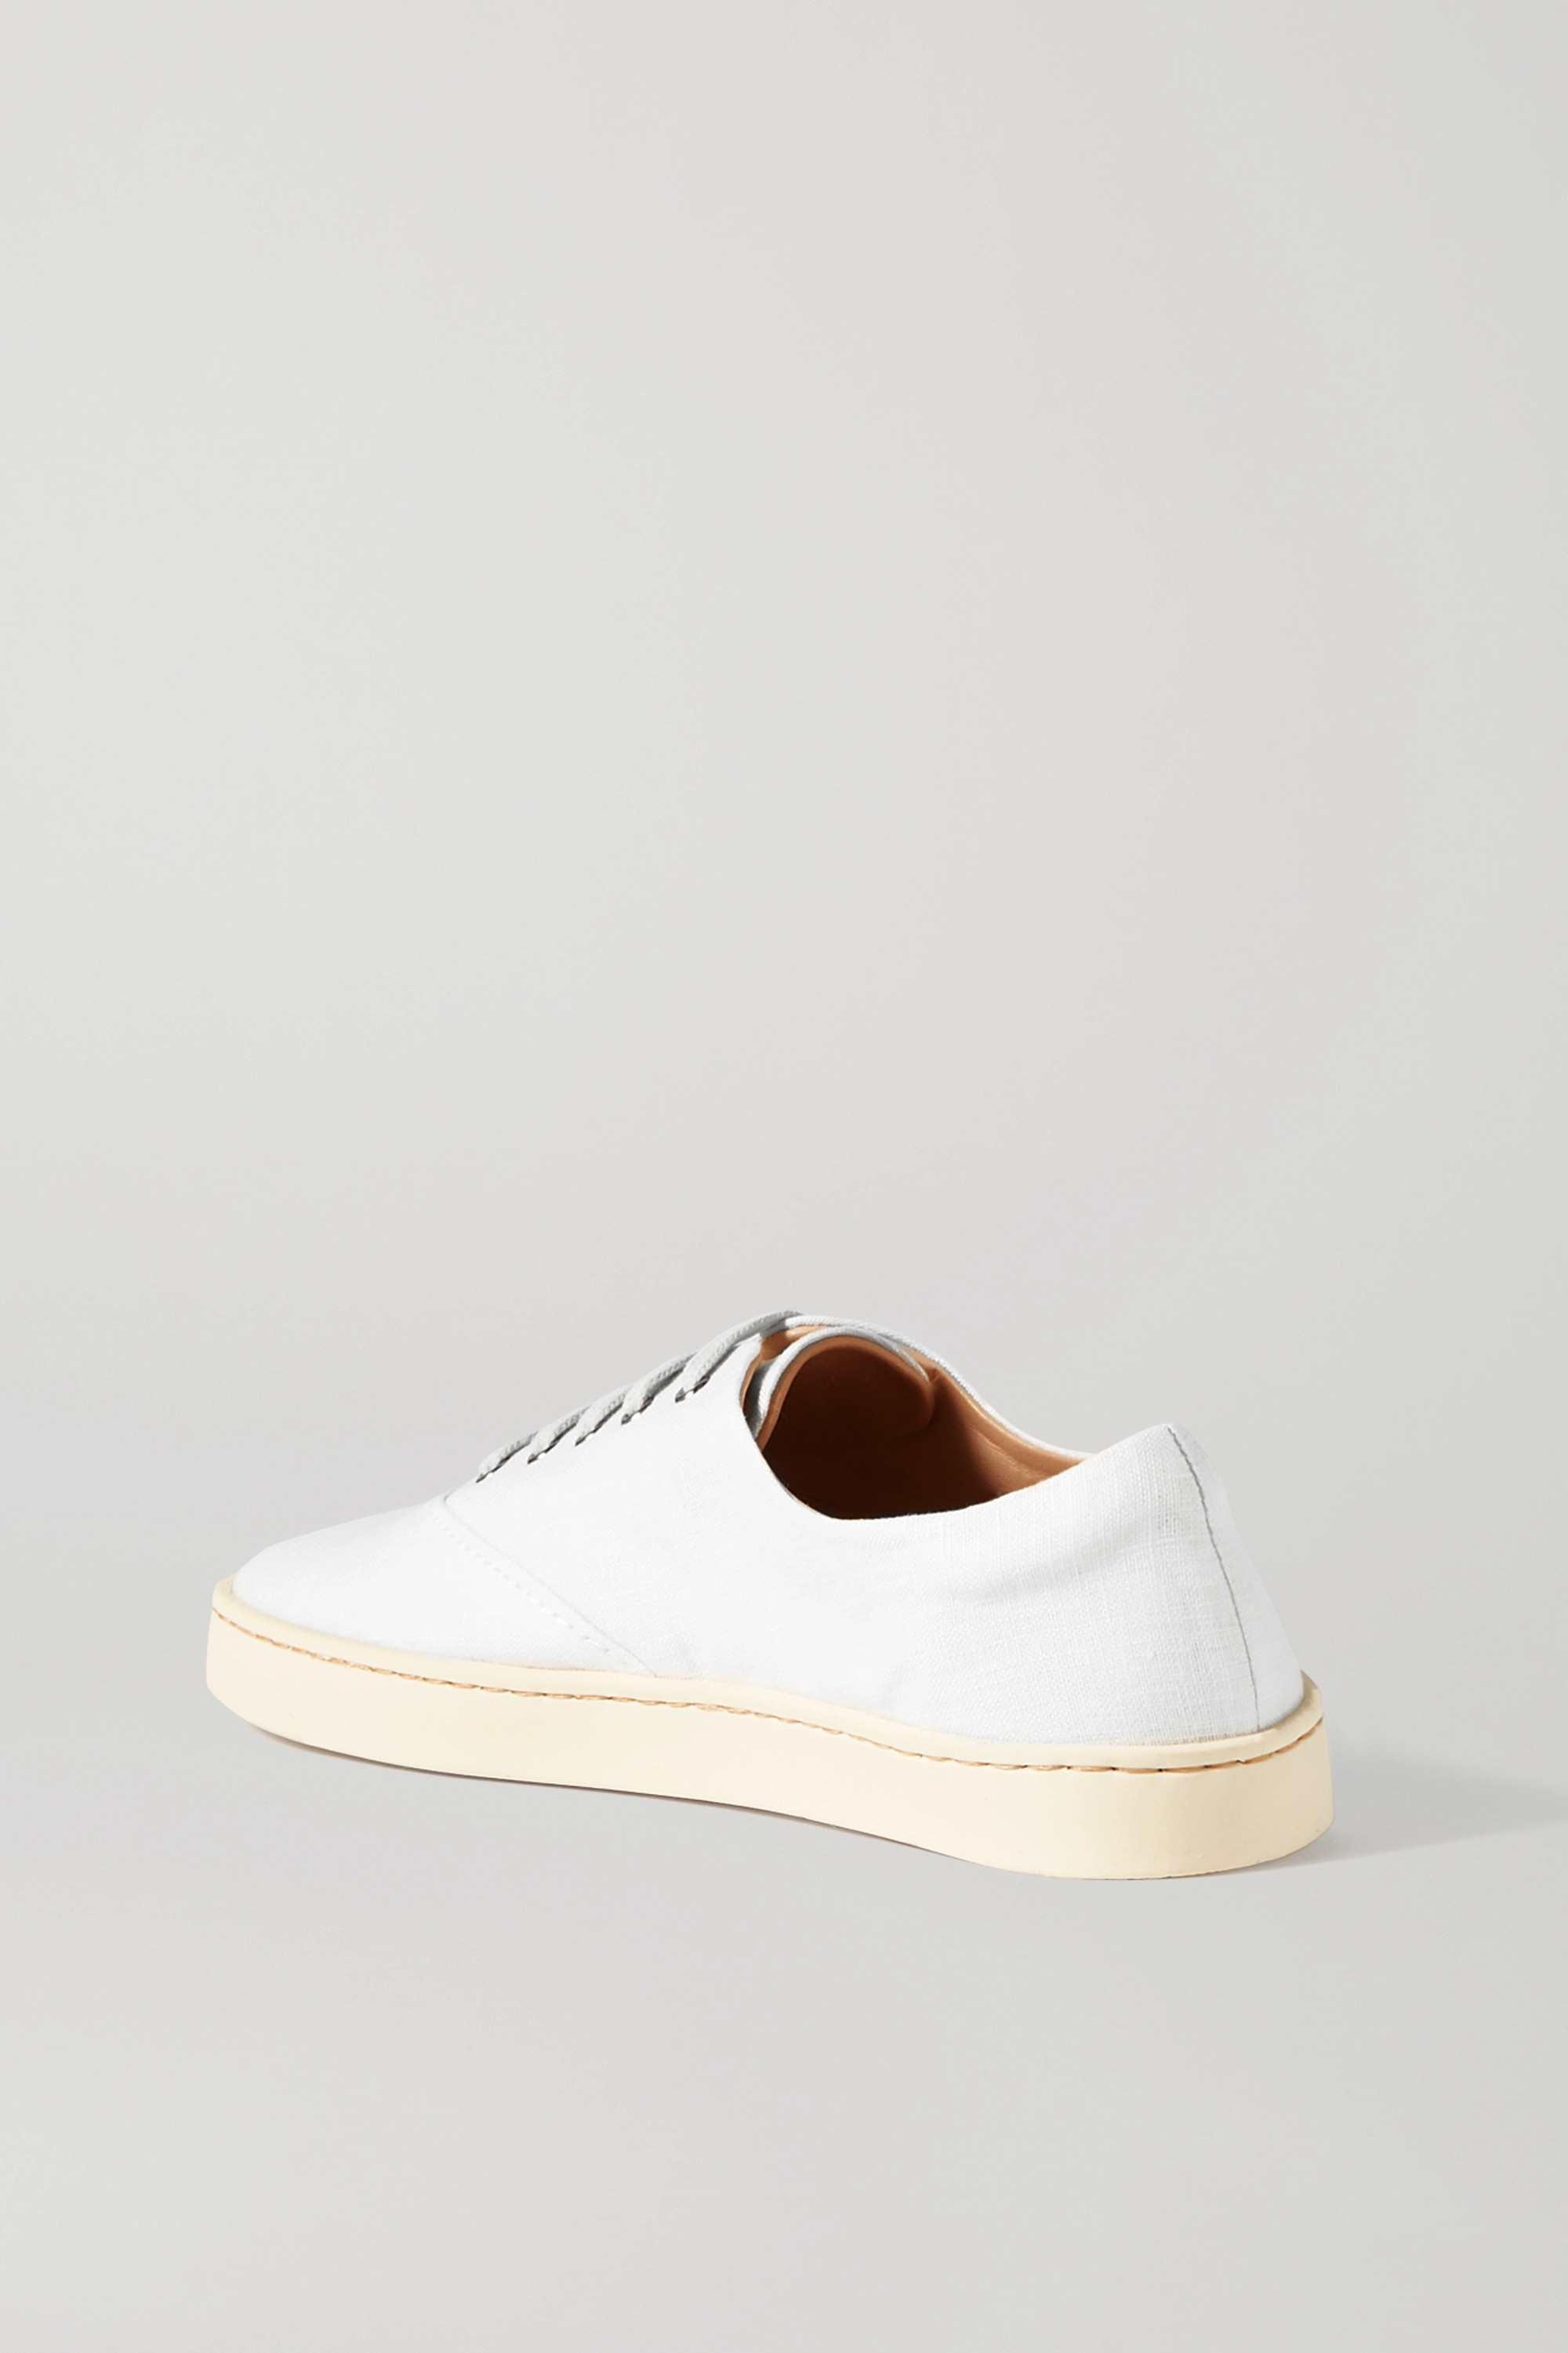 Gabriela Hearst Marcello linen sneakers